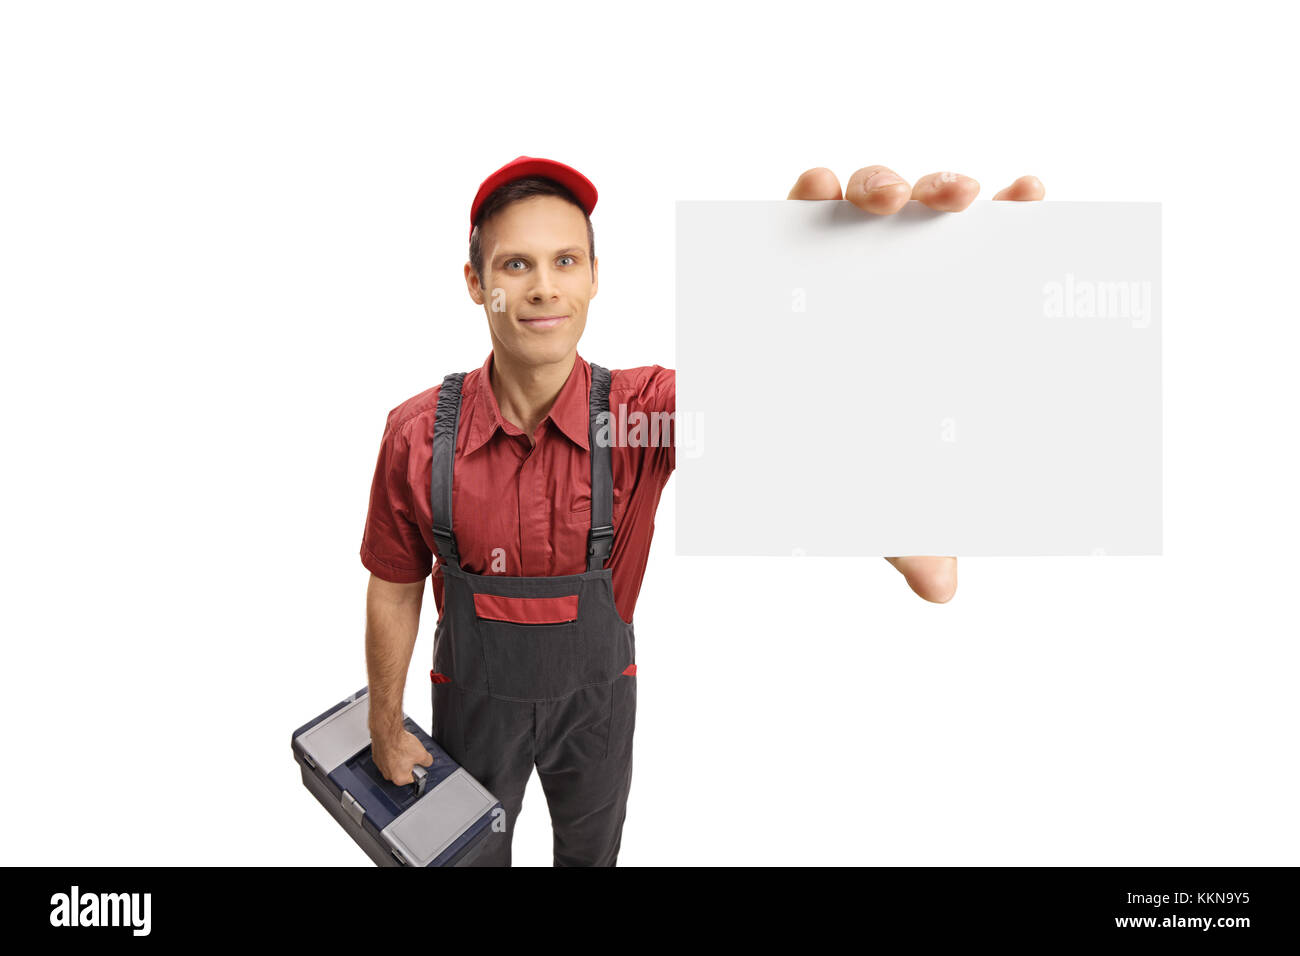 Serviceman with a toolbox showing a blank card isolated on white background - Stock Image